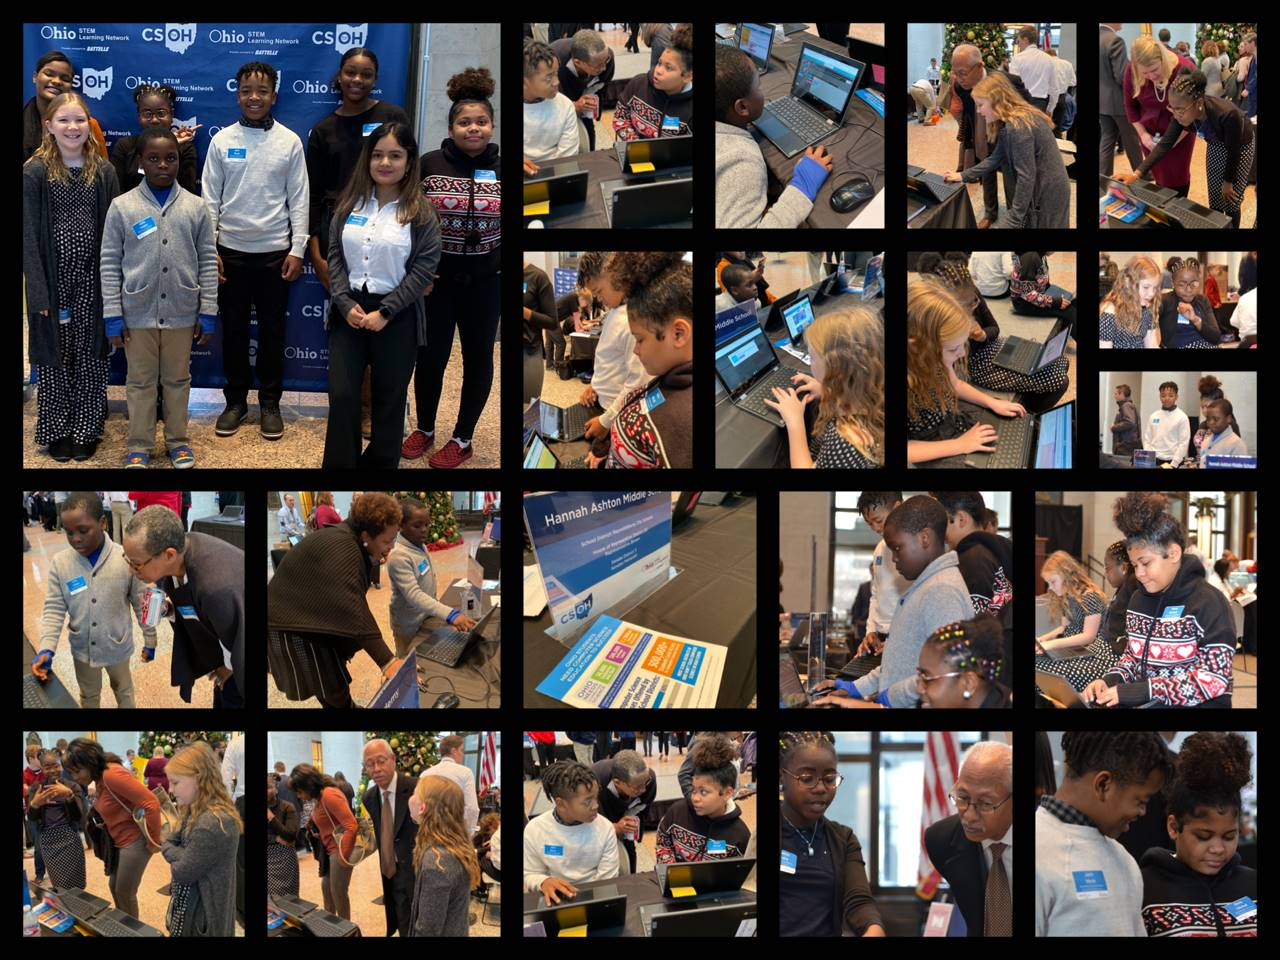 This collage shows 5th and 6th graders showing their websites and games on Code.org to legislators a